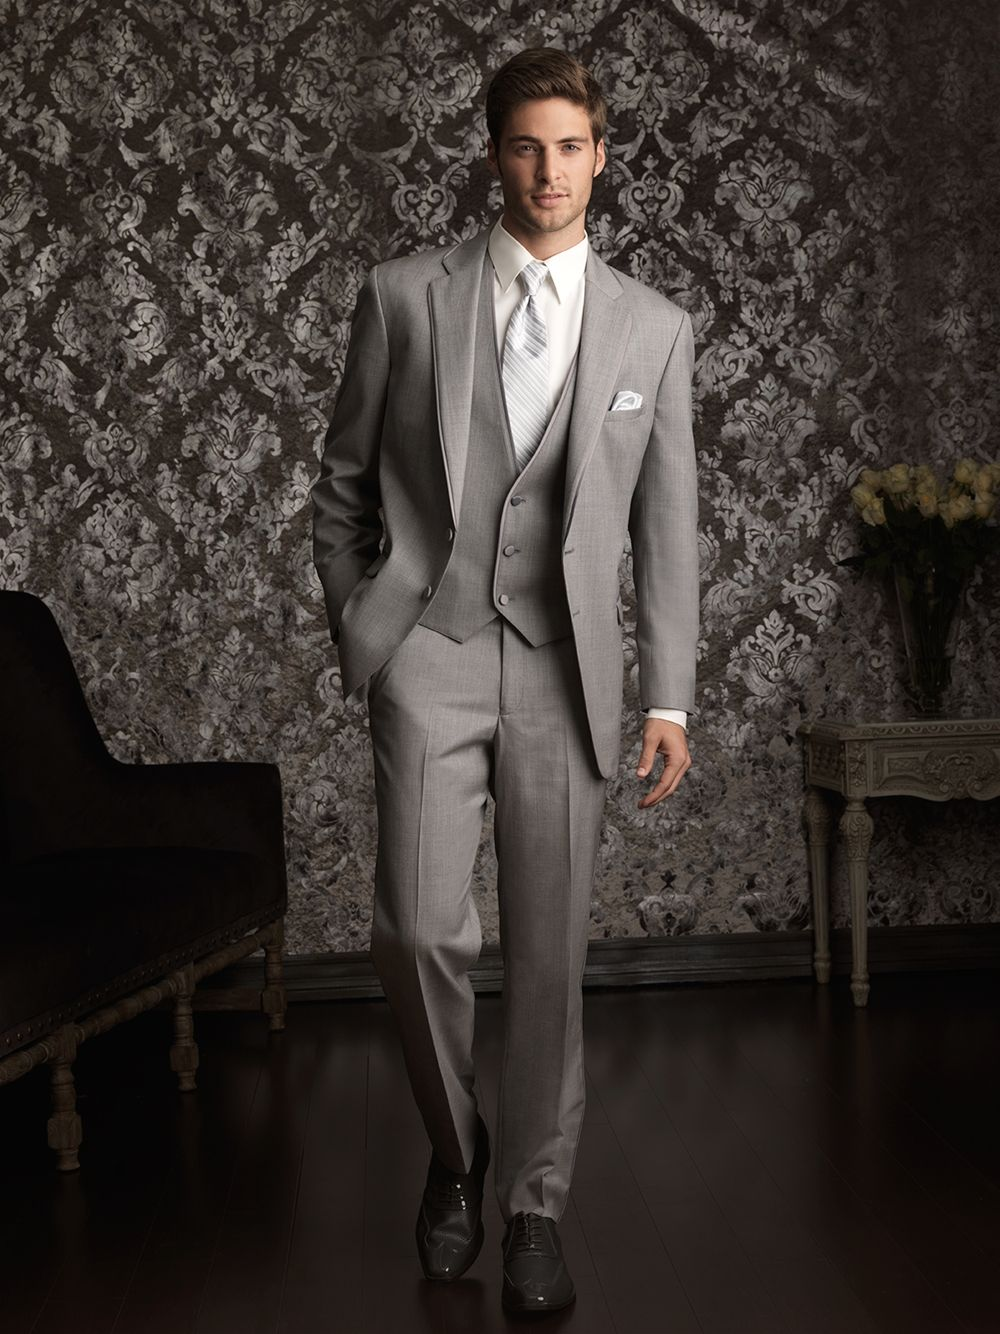 Allure Men Tuxedos from Heartstrings Bridal Hopkins, Mn 952-932-9090 www.heartstringsbridal.com Please mention that you found them thru Jevel Wedding Planning's Pinterest Account. Keywords: #tuxedos #minnesotabridalsalon #jevelweddingplanning Follow Us: www.jevelweddingplanning.com www.facebook.com/jevelweddingplanning/